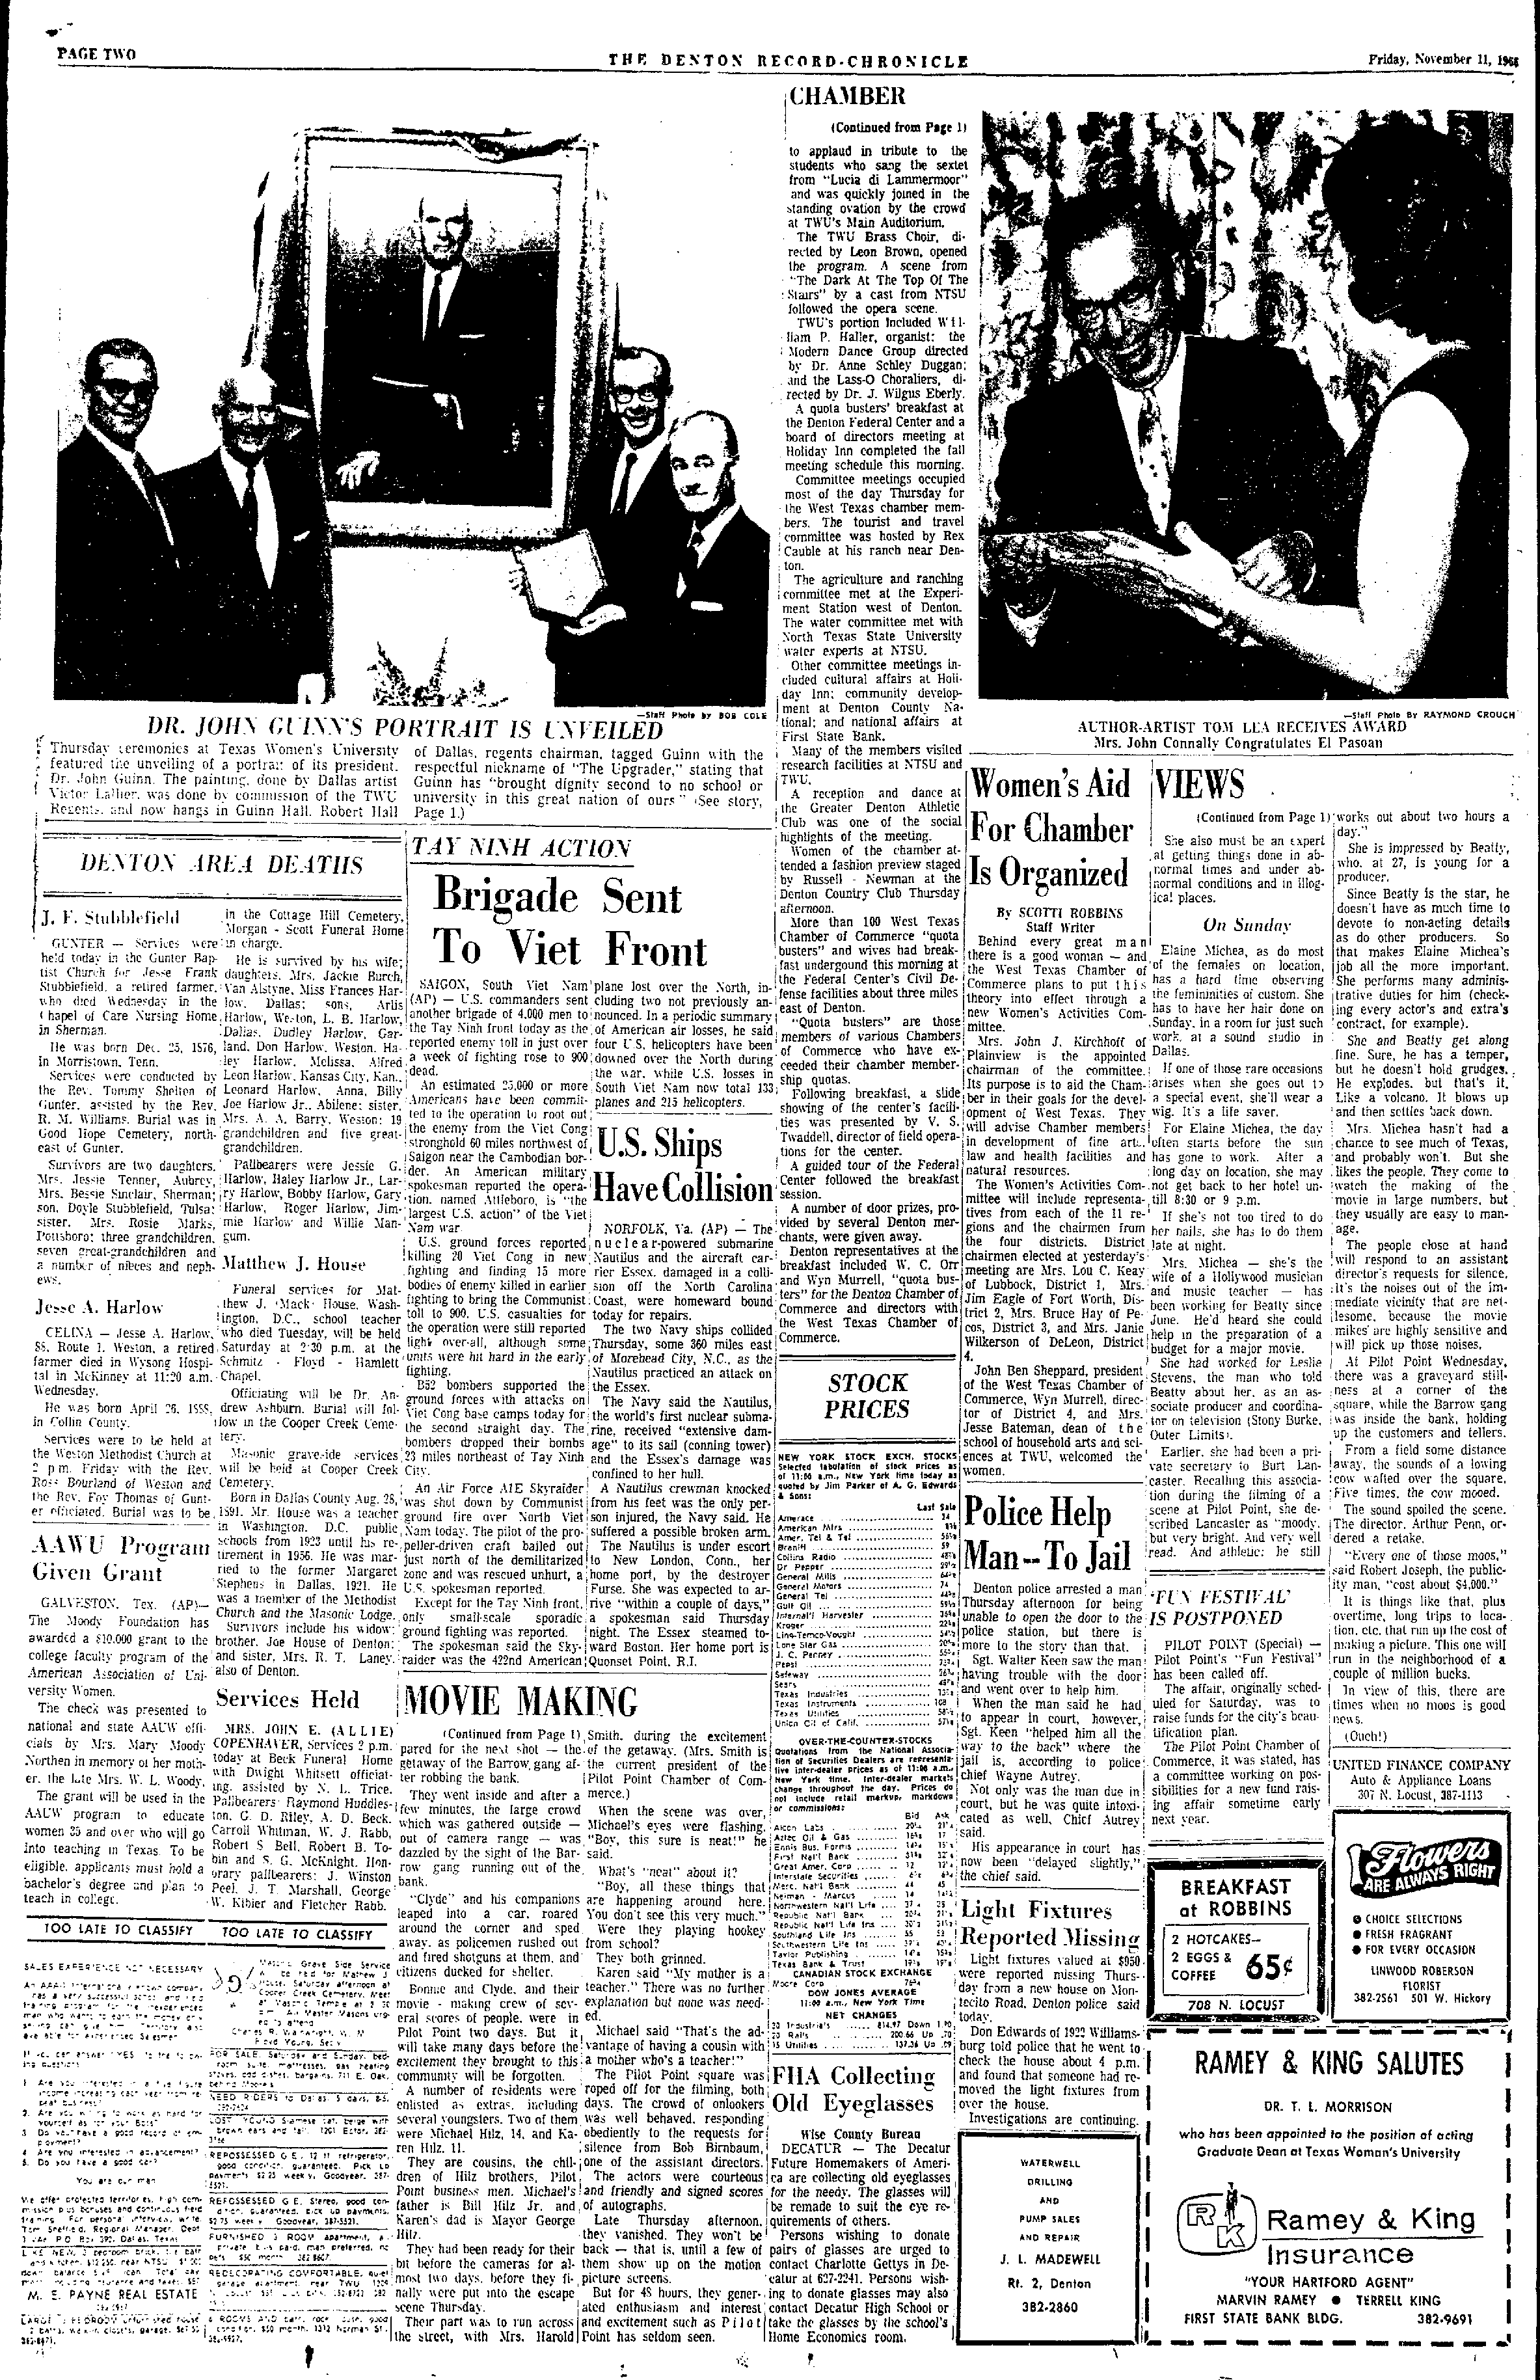 The Years Roll Back for Film (November 11, 1966)